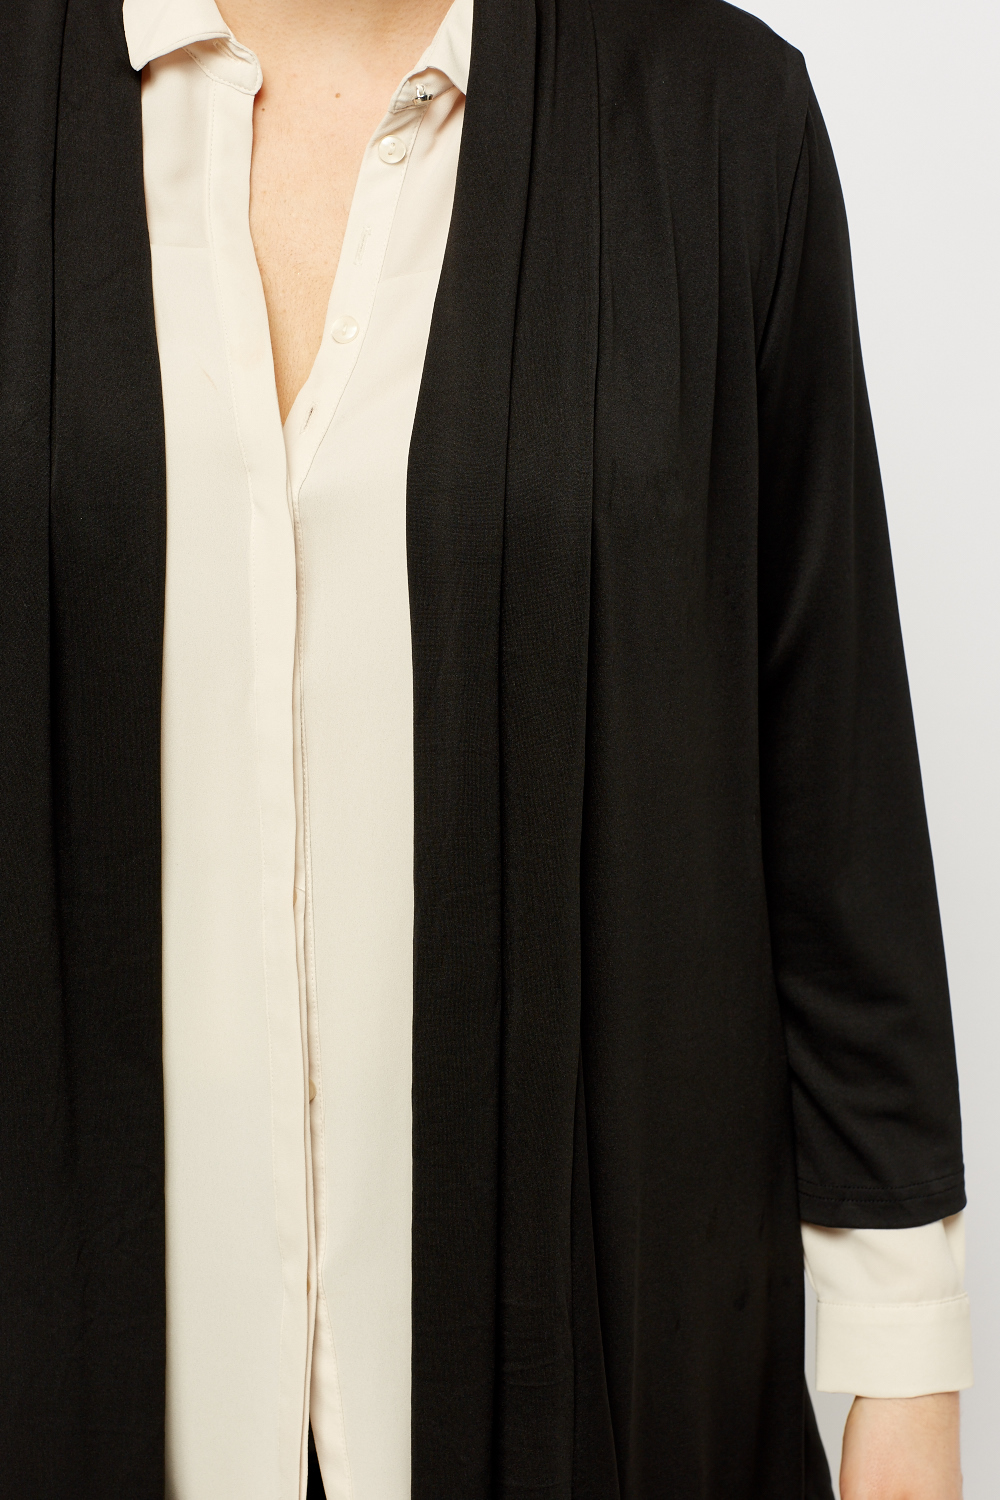 Black Open Front Cardigan - Just £5